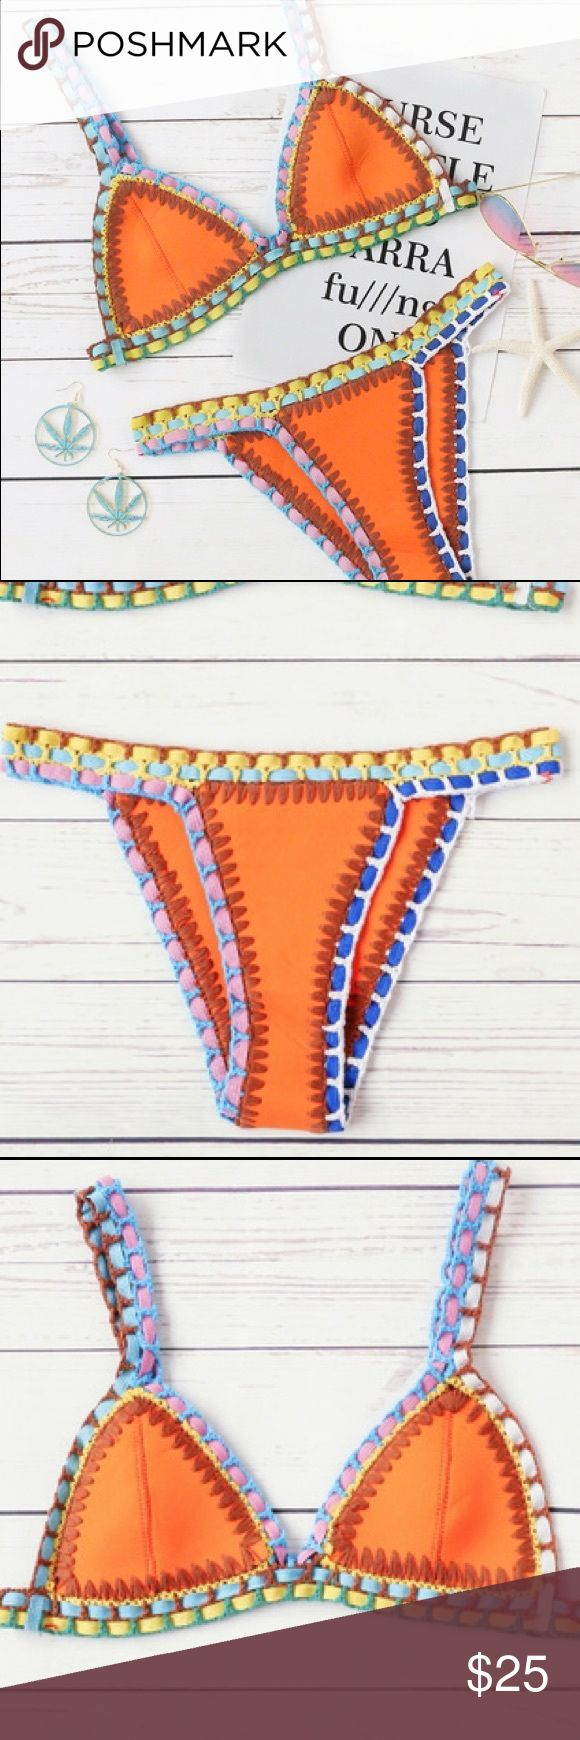 Orange Crochet Trim Triangle Bikini Set Summer Collection 🌴 Coming Soon ☀️ Limited Supply. Brand new. Multicolor.     ✨ NO TRADE ✨ MAKE AN OFFER ✨ BUNDLE & SAVE   Please do not hesitate to ask questions✨ Swim